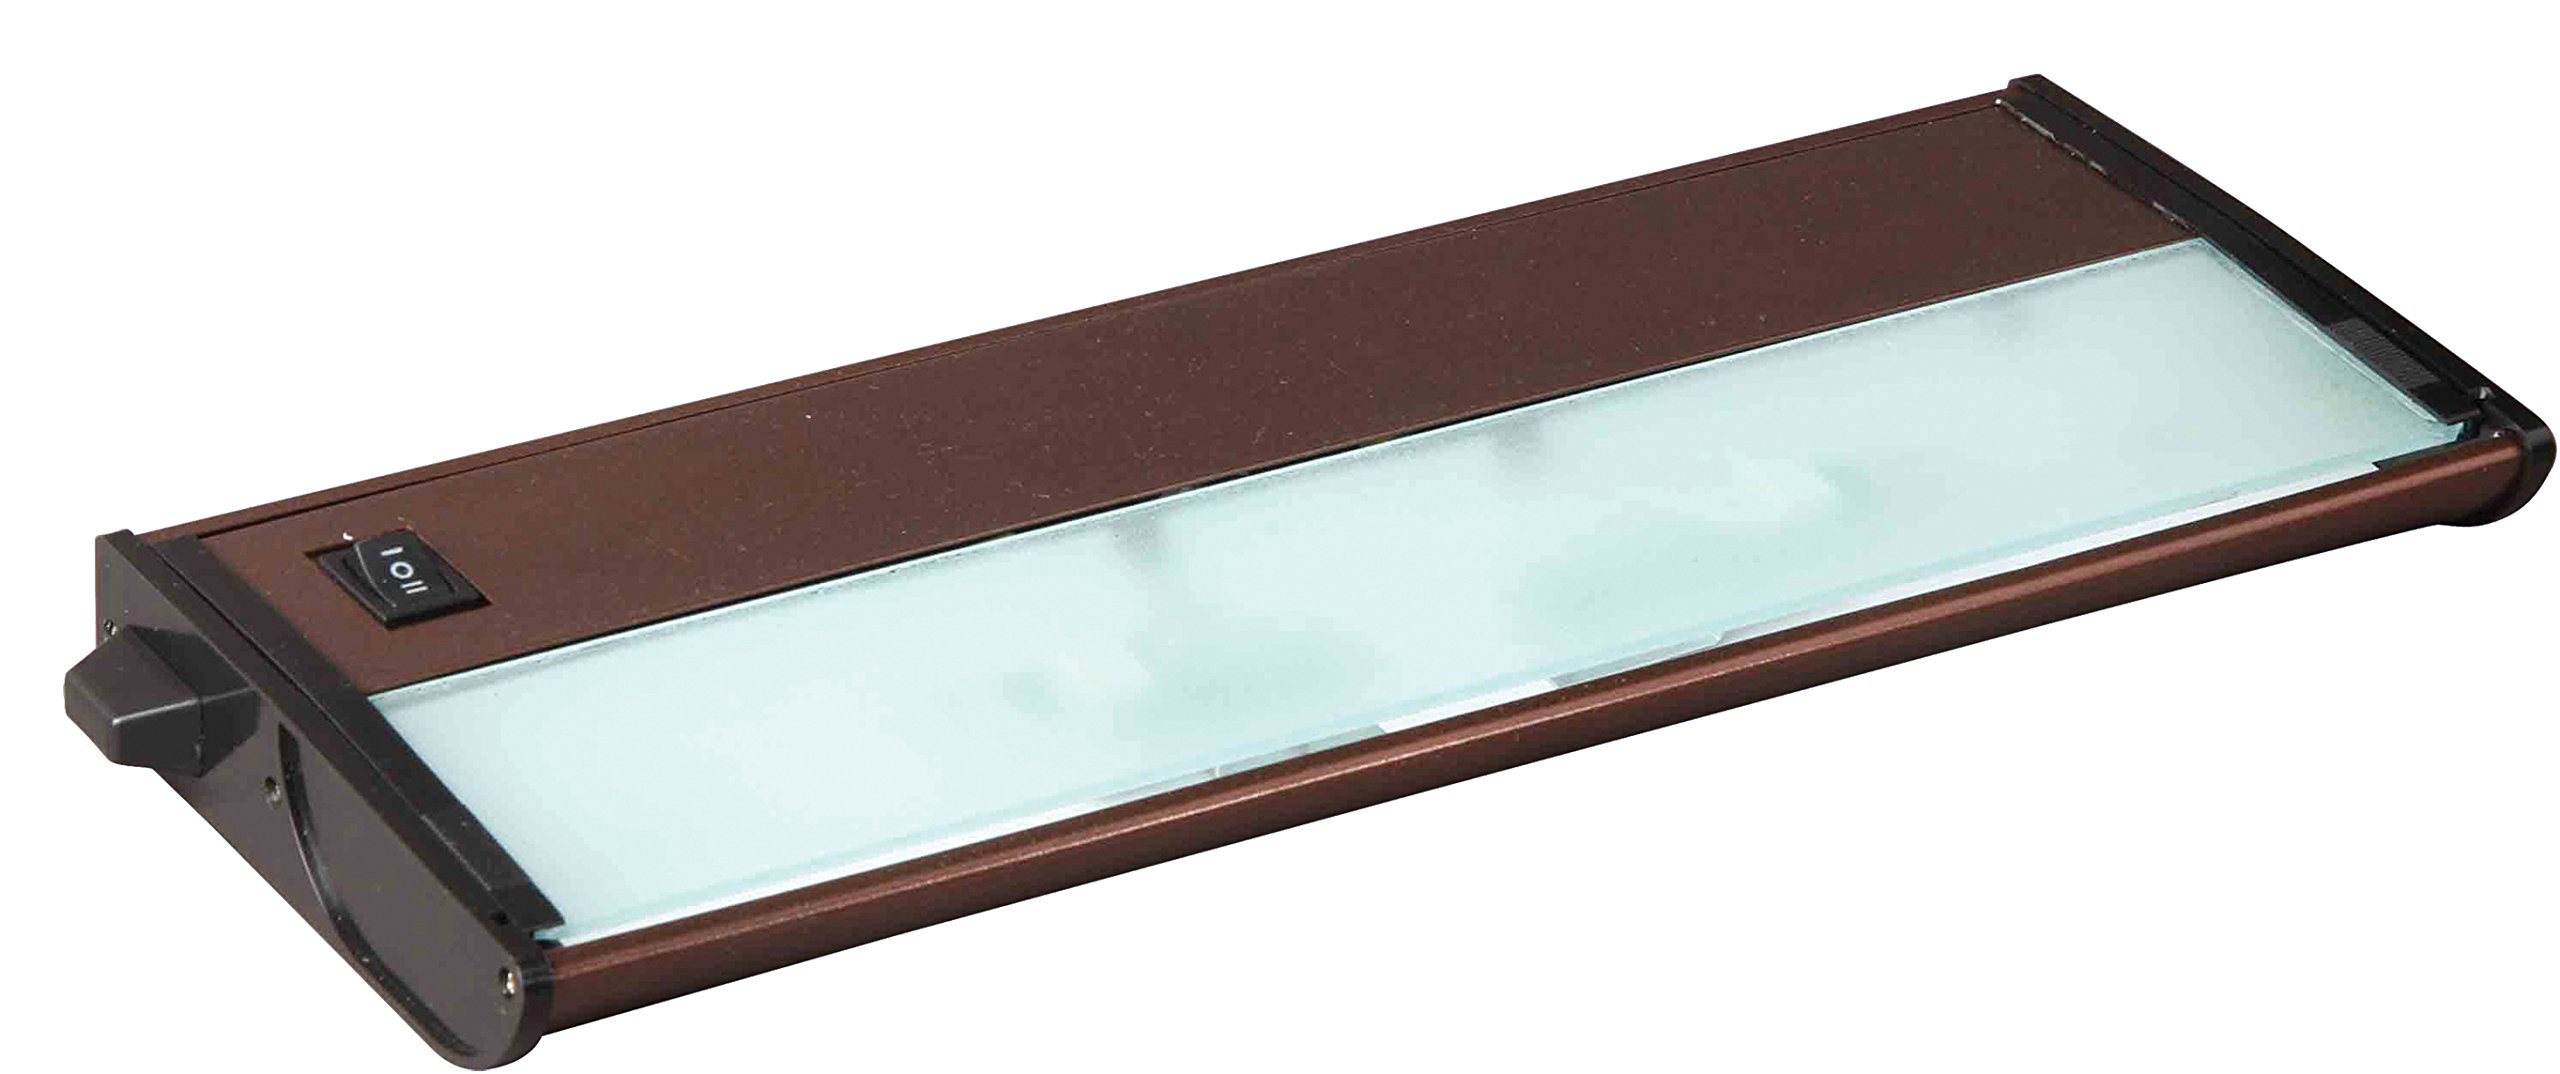 Maxim 87841MB CounterMax MX-X120c 13'' 2-Light 120V Xenon, Metallic Bronze Finish, Glass, G8 Xenon Xenon Bulb , 50W Max., Damp Safety Rating, 2900K Color Temp, Standard Dimmable, Glass Shade Material, 800 Rated Lumens